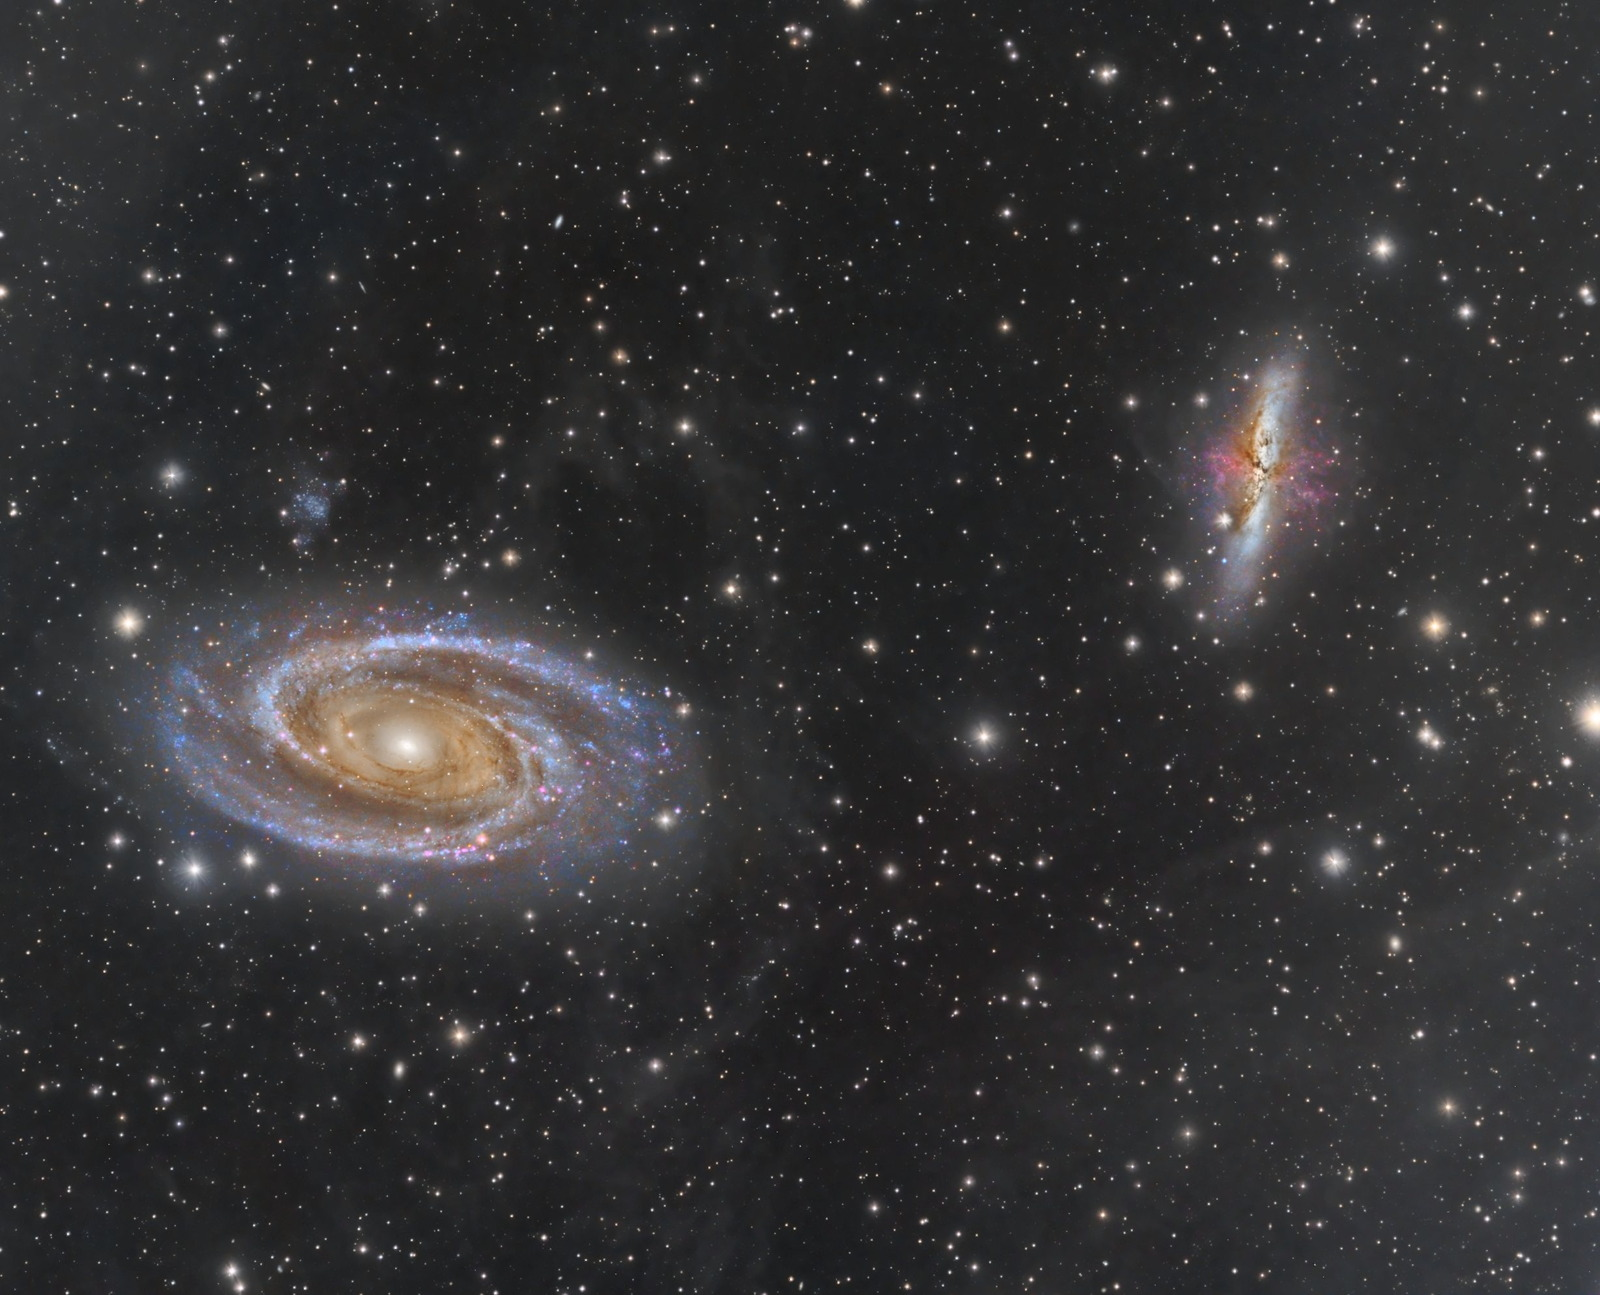 M81 and M82 by Stefan Muckenhuber